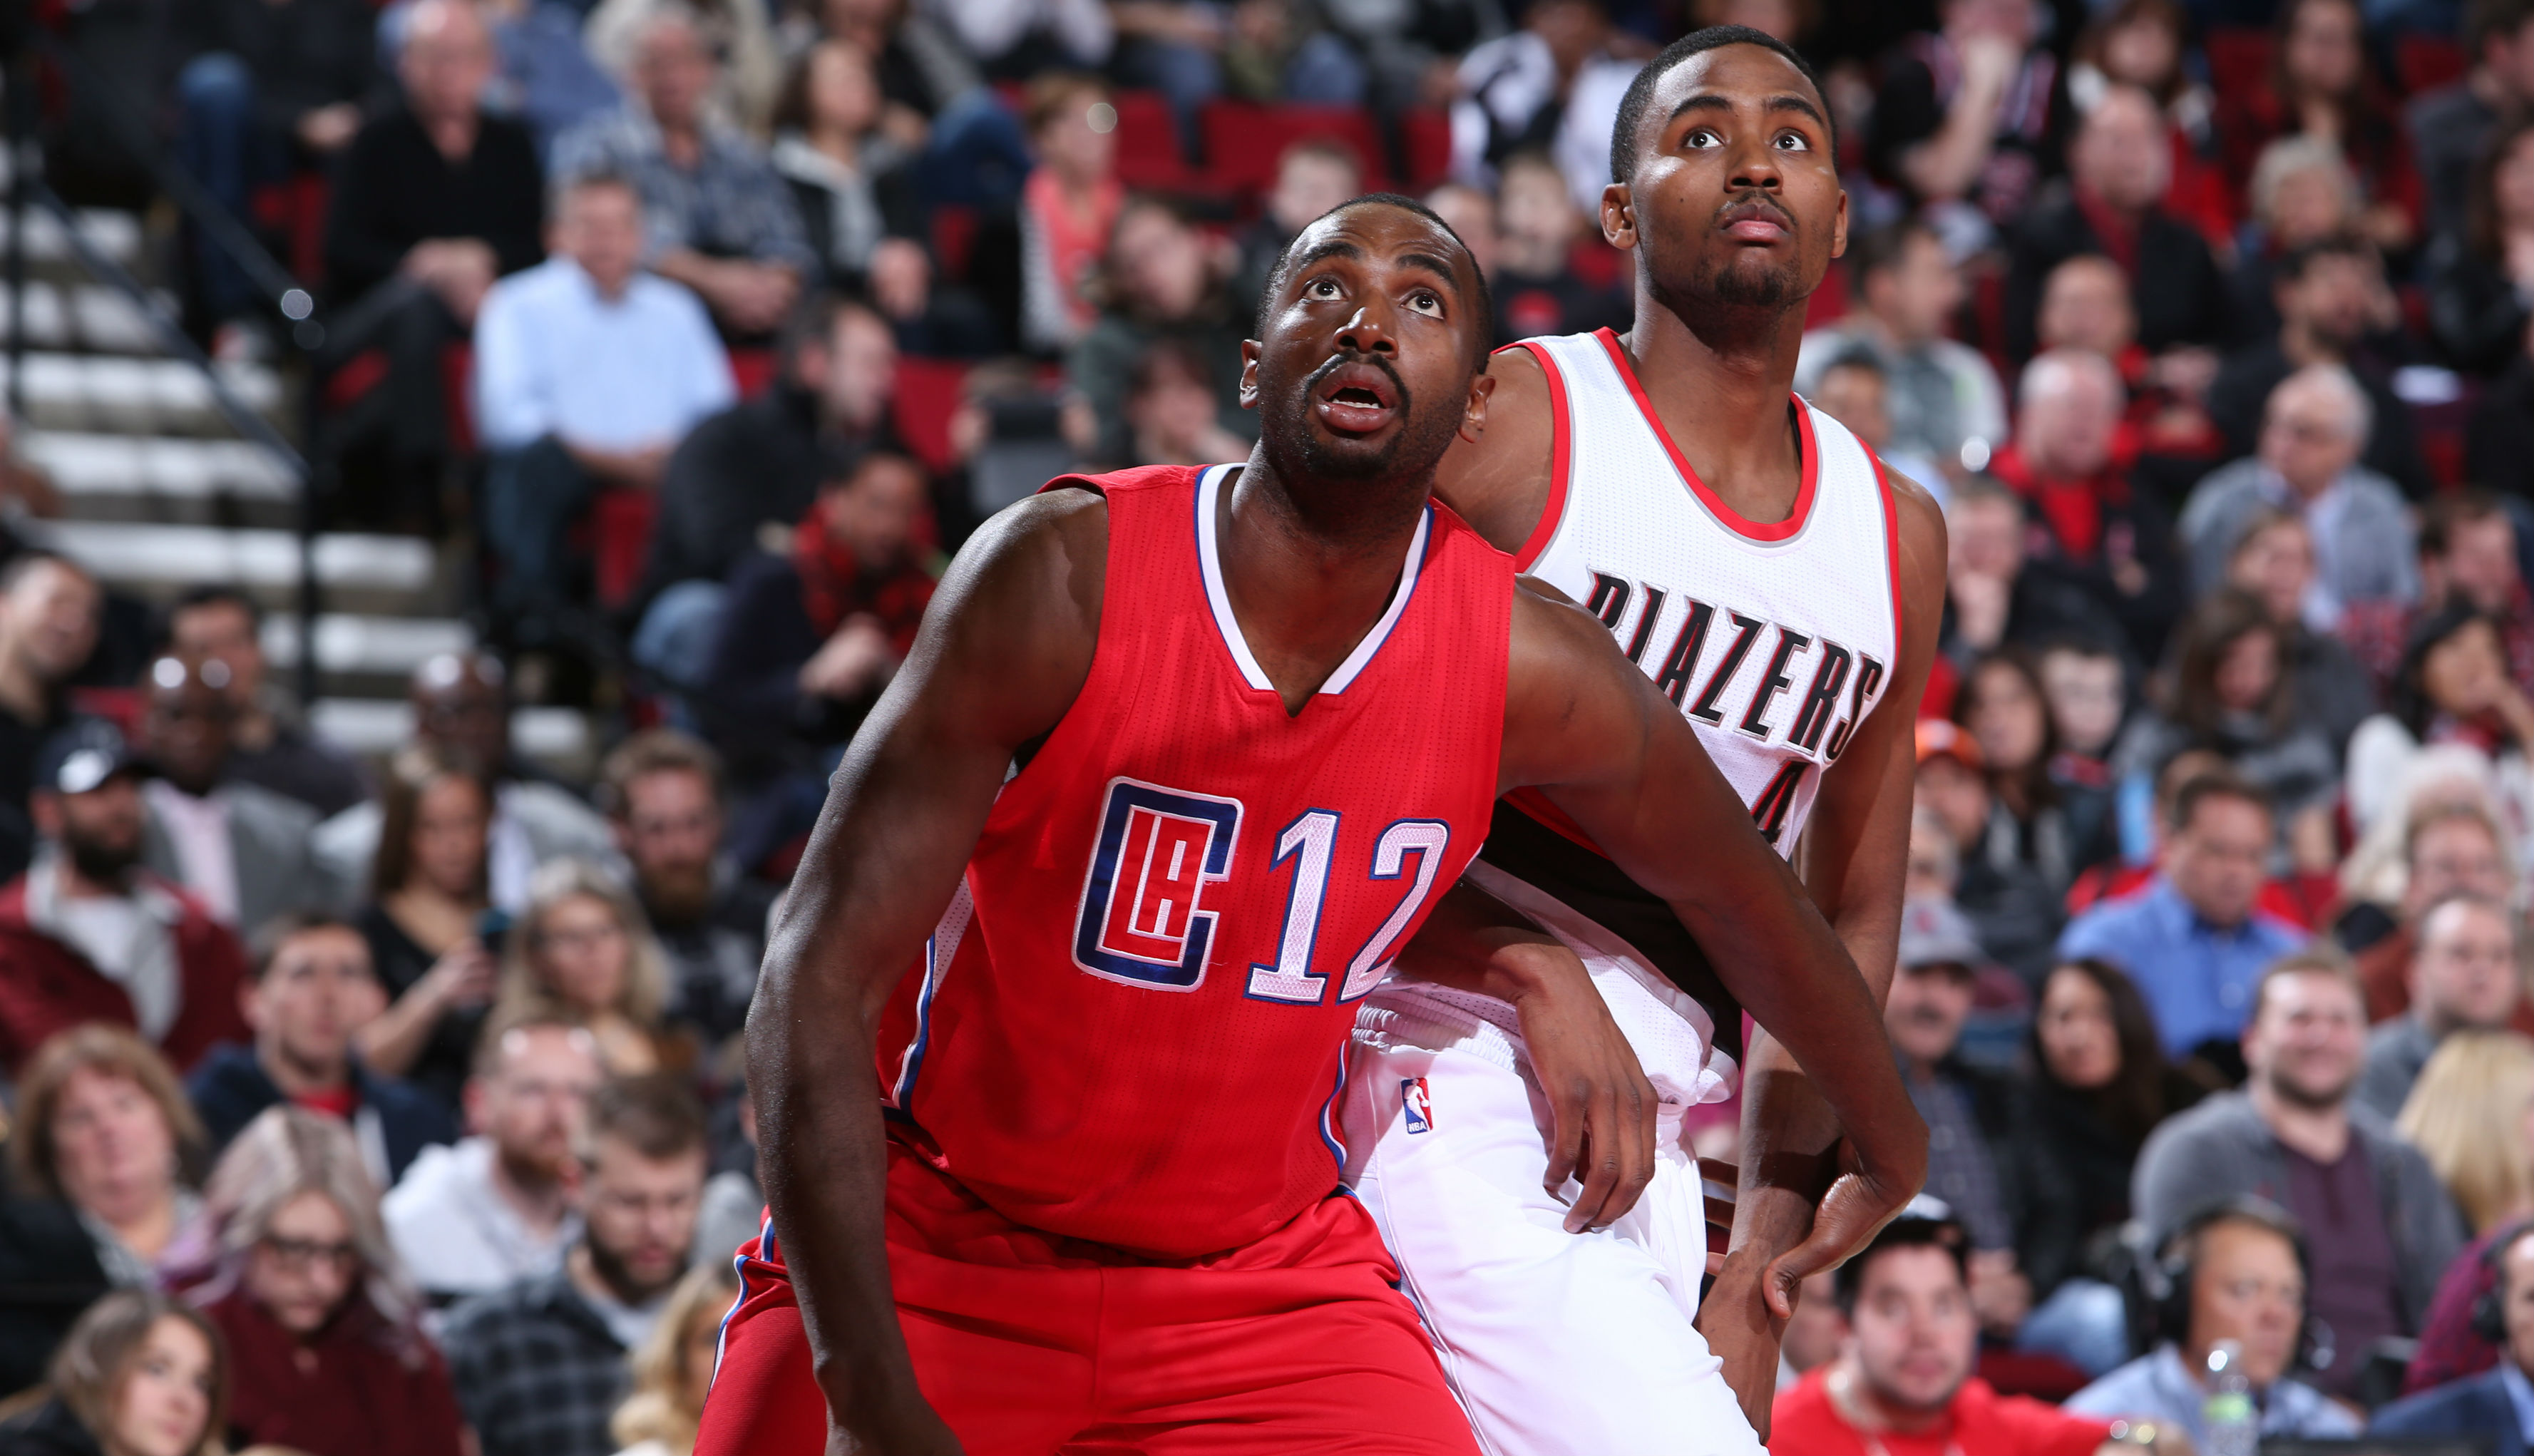 Luc Mbah a Moute agrees to a one-year deal with Houston